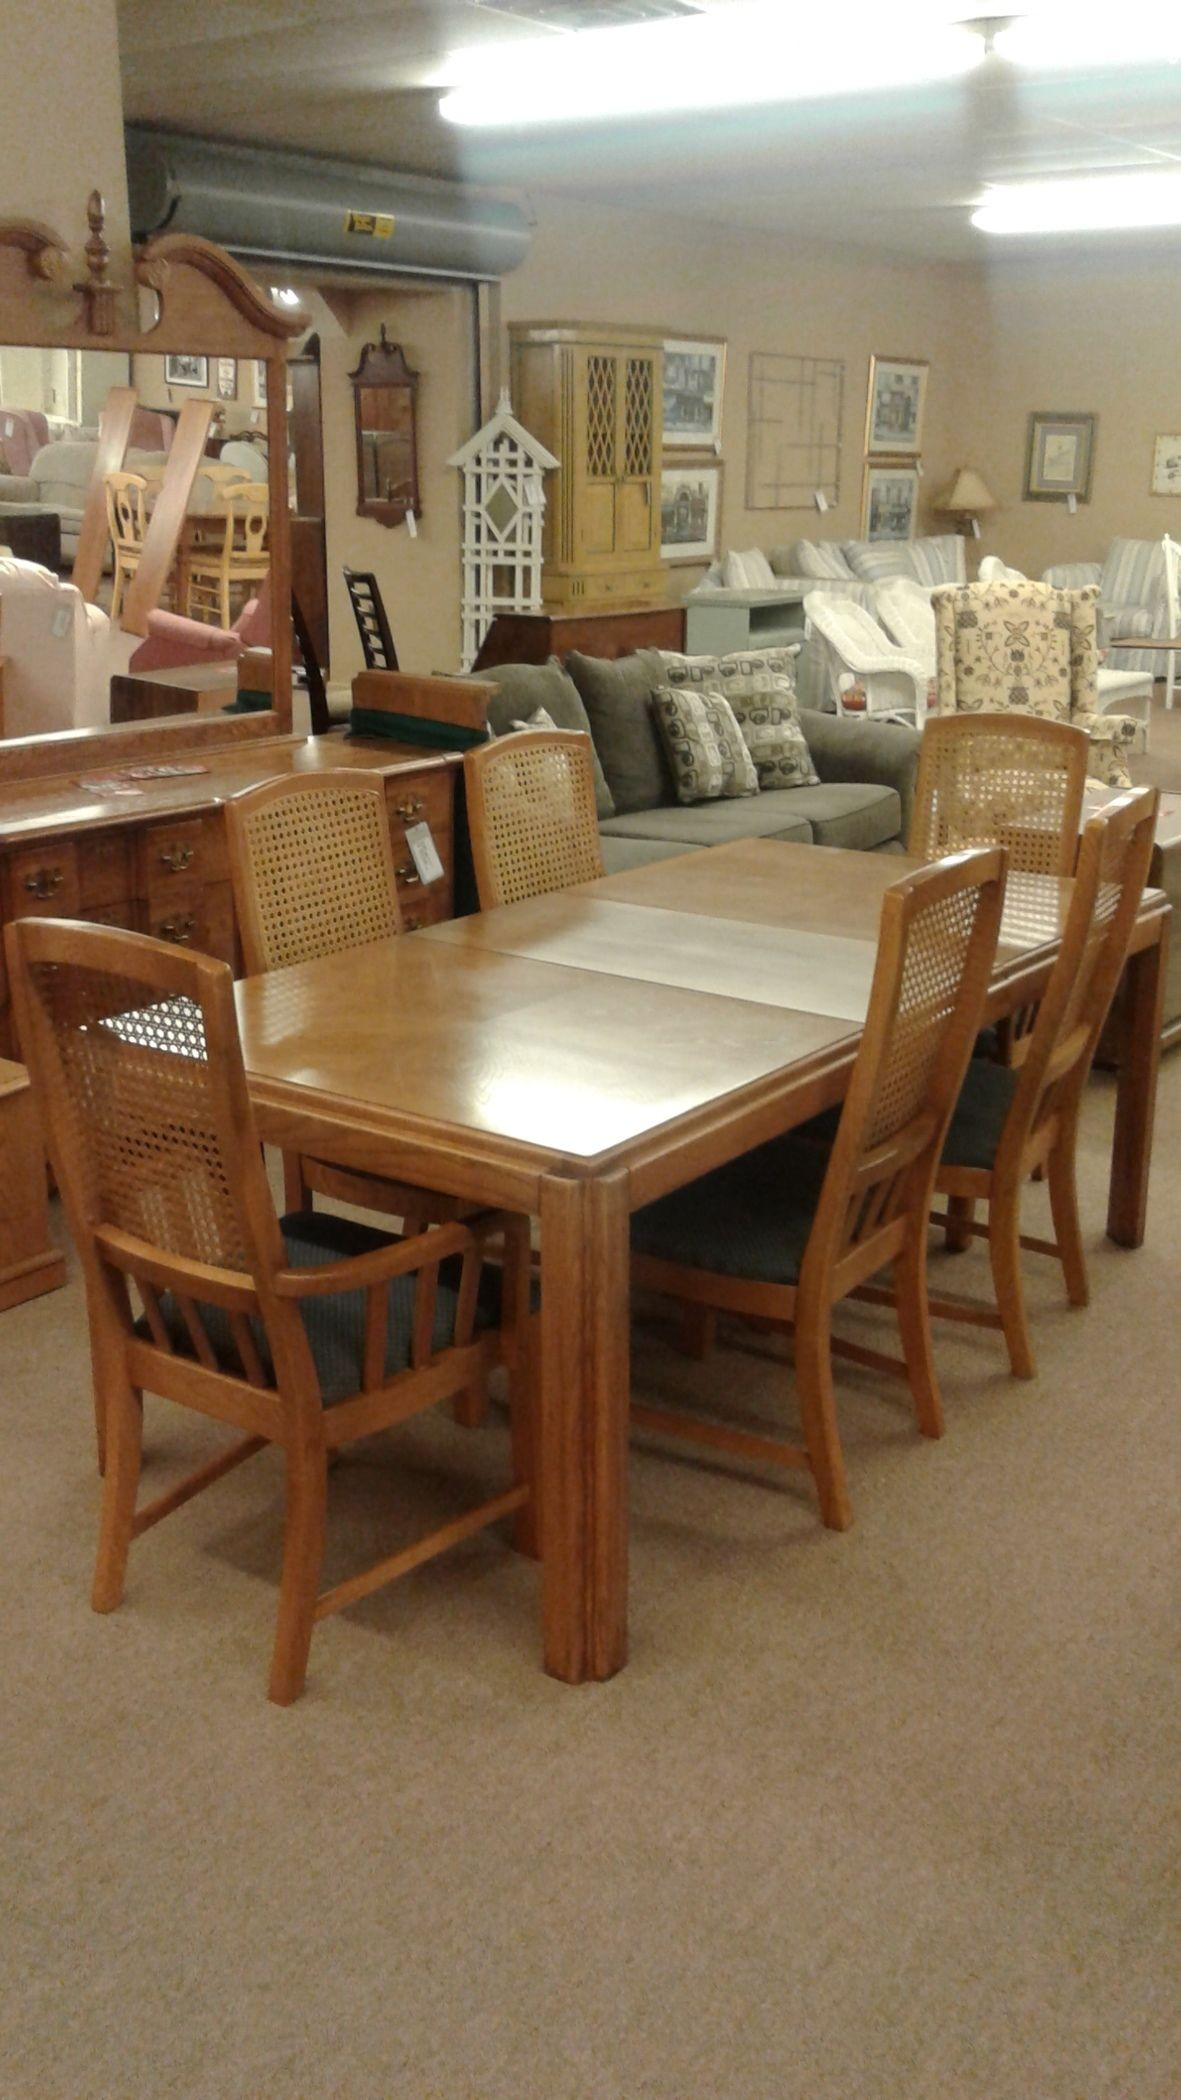 Delmarva furniture consignment pulaski dark cherry hall